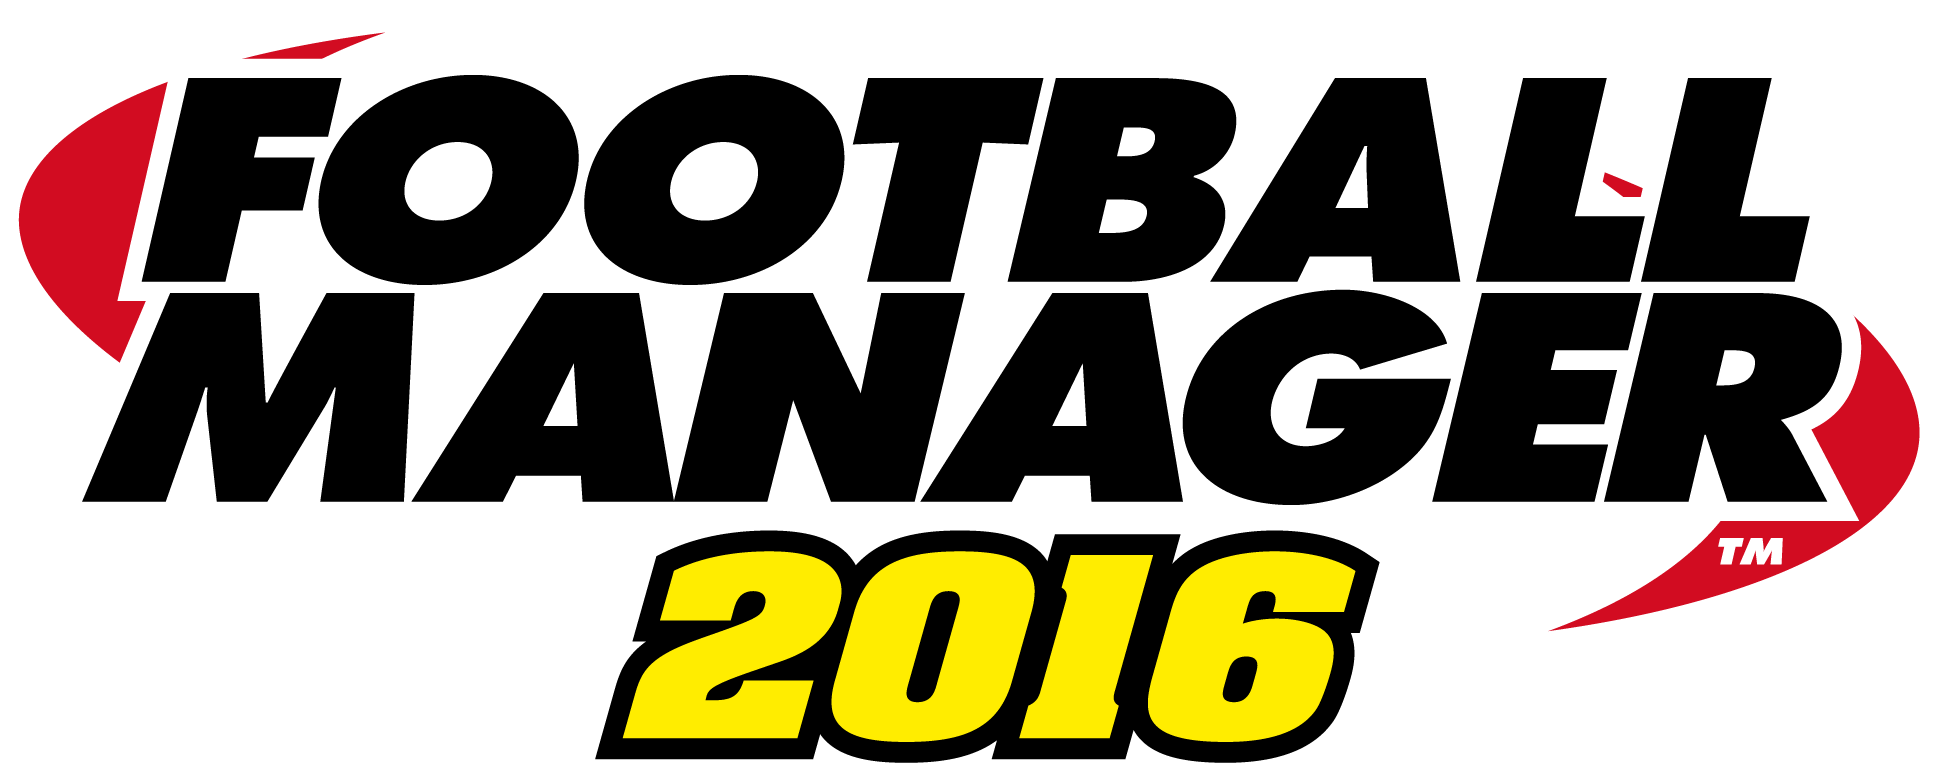 Si splits football manager. 2016 logo png graphic royalty free